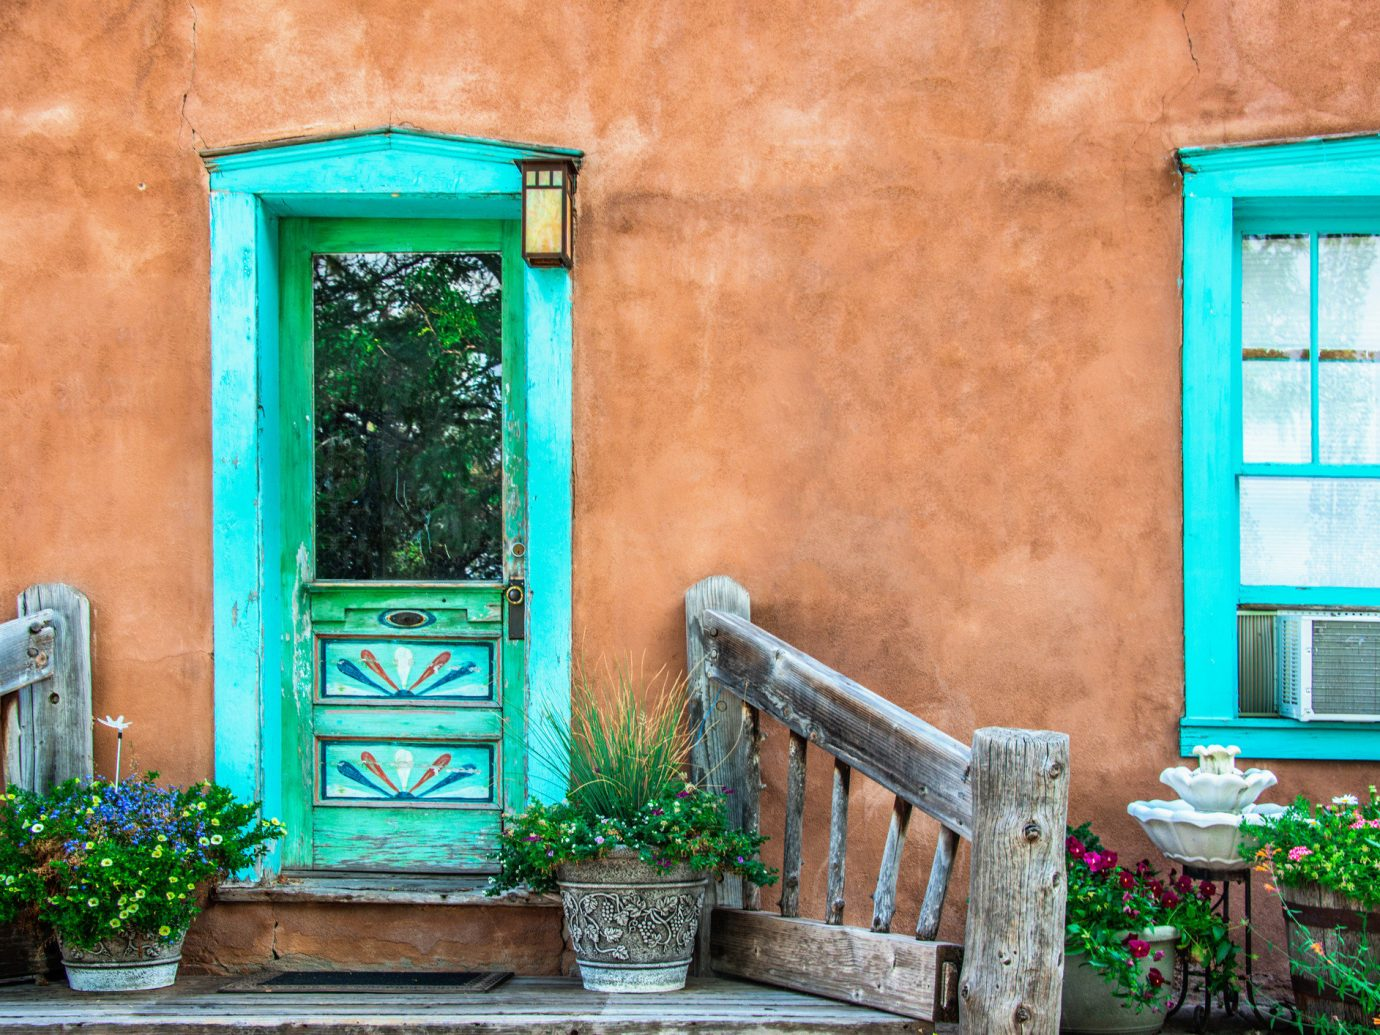 Offbeat building outdoor color green blue house wall home window estate door porch interior design facade backyard Garden mansion cottage Courtyard old stone surrounded